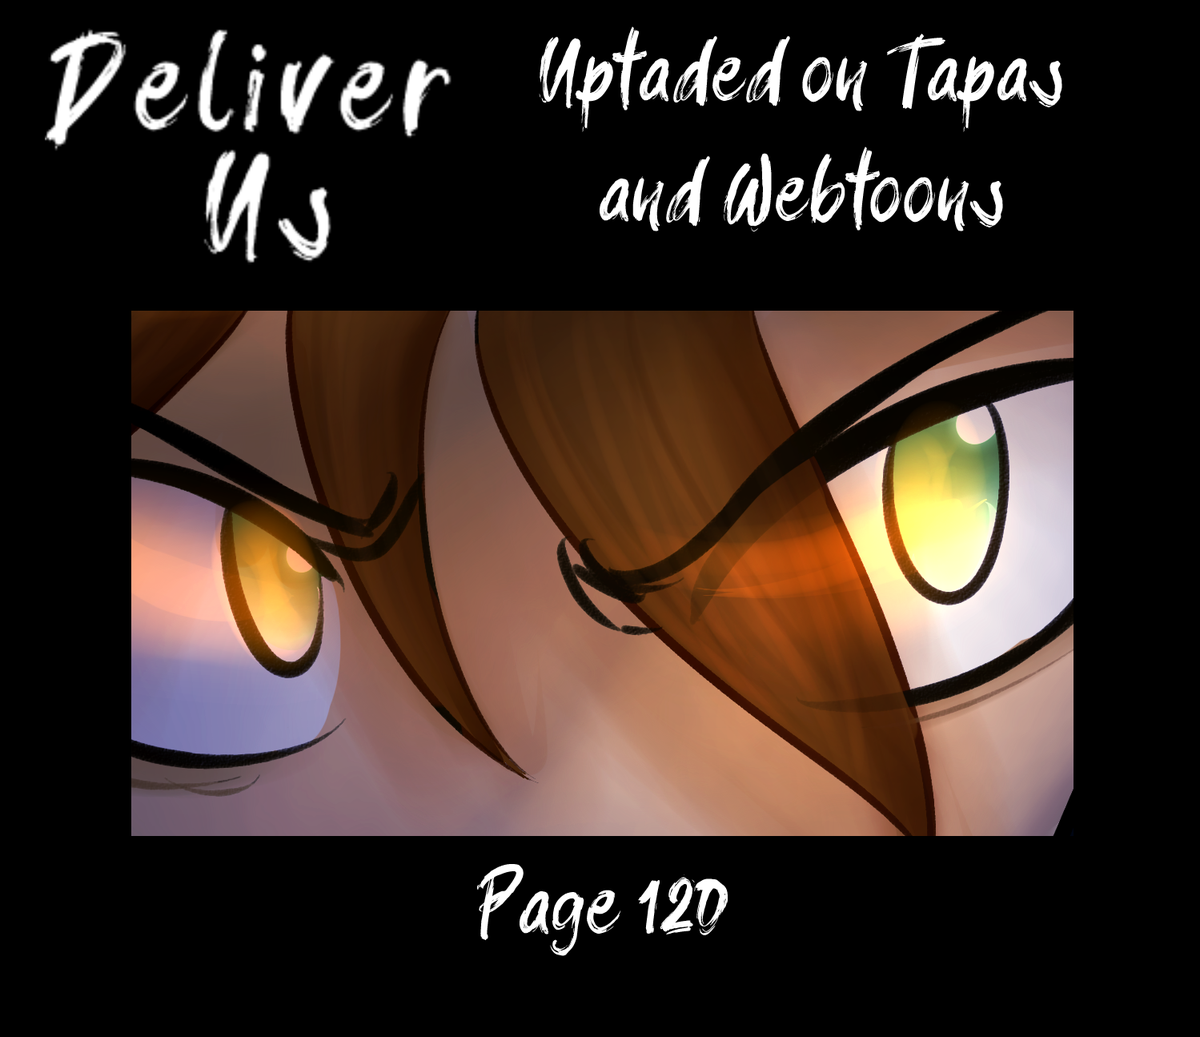 Deliver Us has updated it's newest page on Tapas and Webtoons! You can read ahead 5 pages by becoming a patron!     [#webcomic #webtoons #tapas]